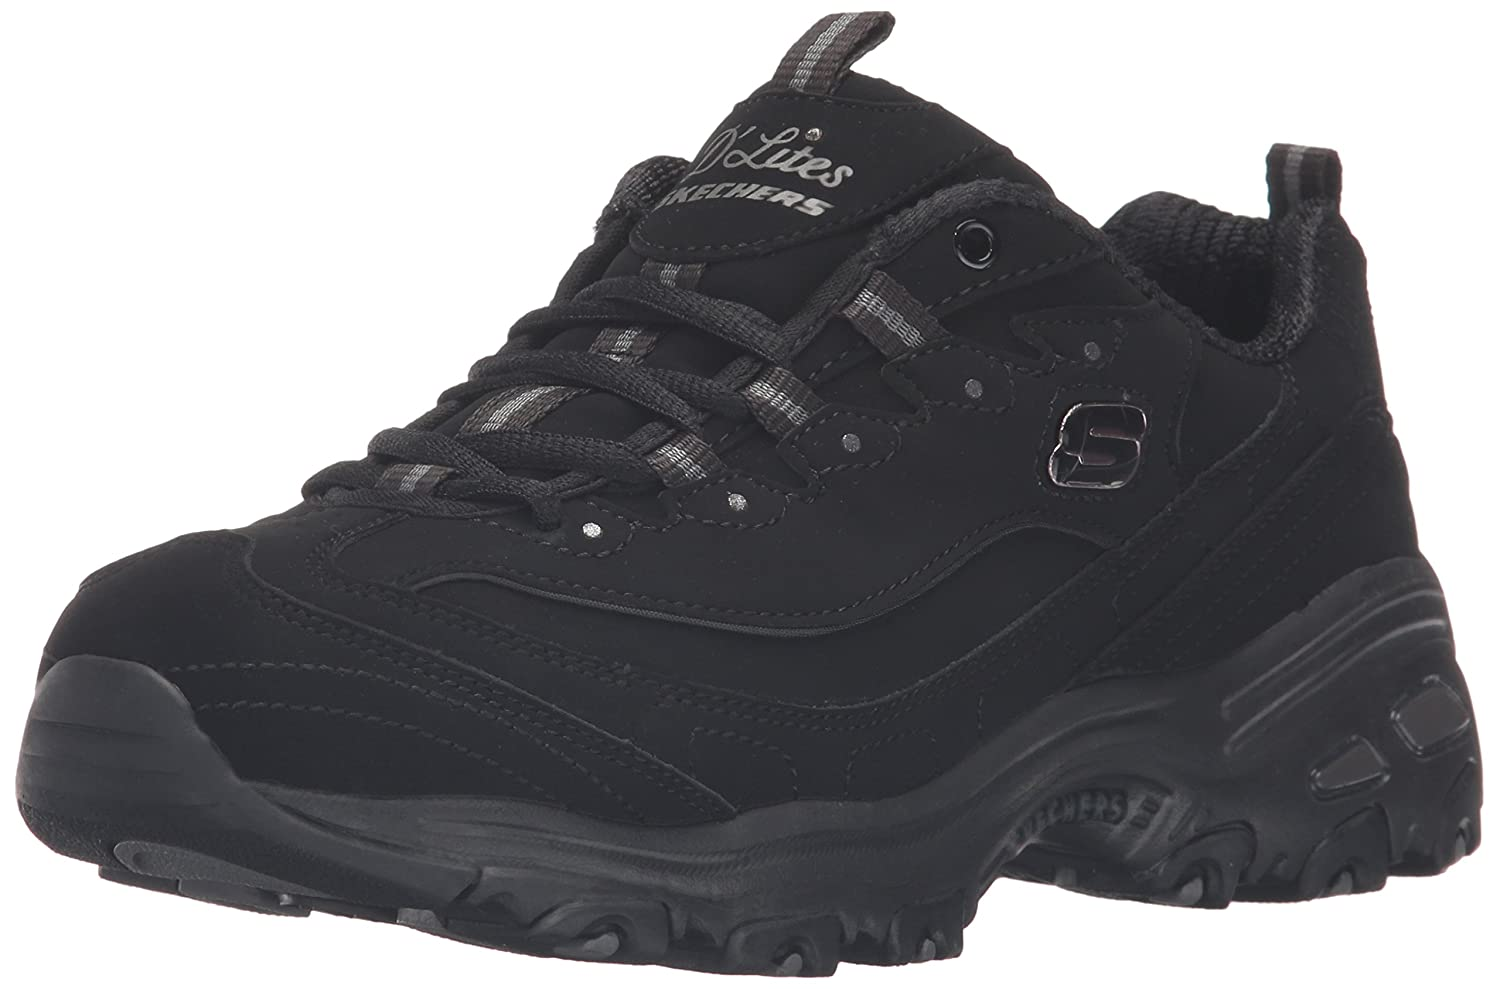 Skechers Women's D'Lites Memory Foam Lace-up Sneaker B01ESD61JI 8.5 B(M) US|Black/Black